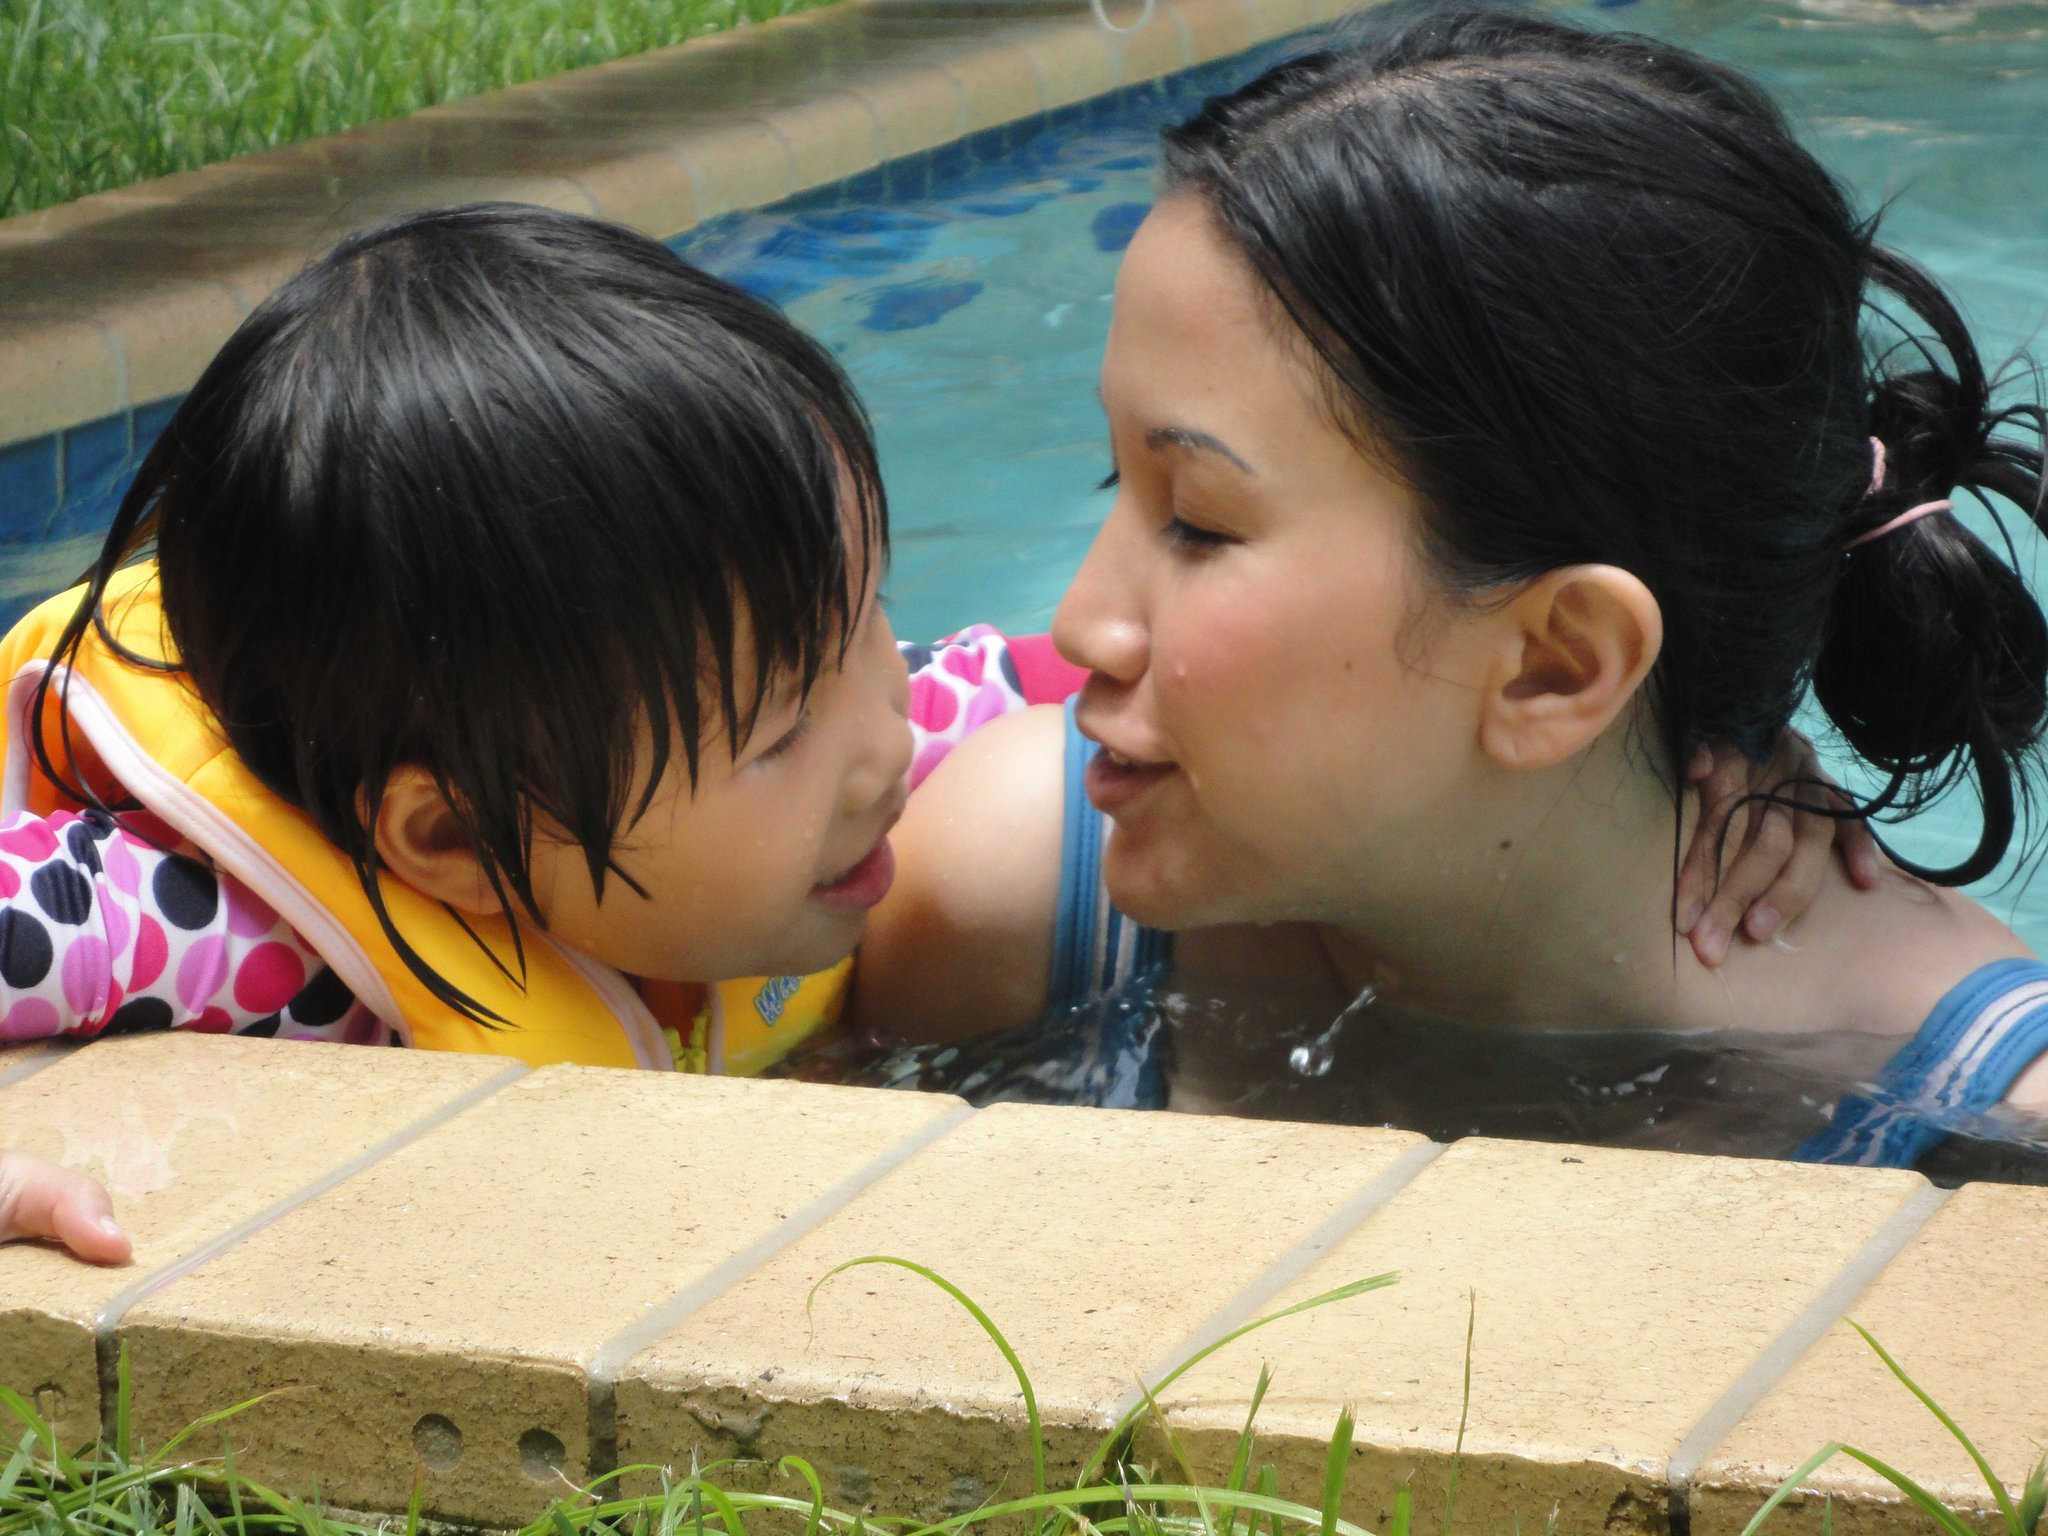 Mother and baby sharing a moment in a pool.